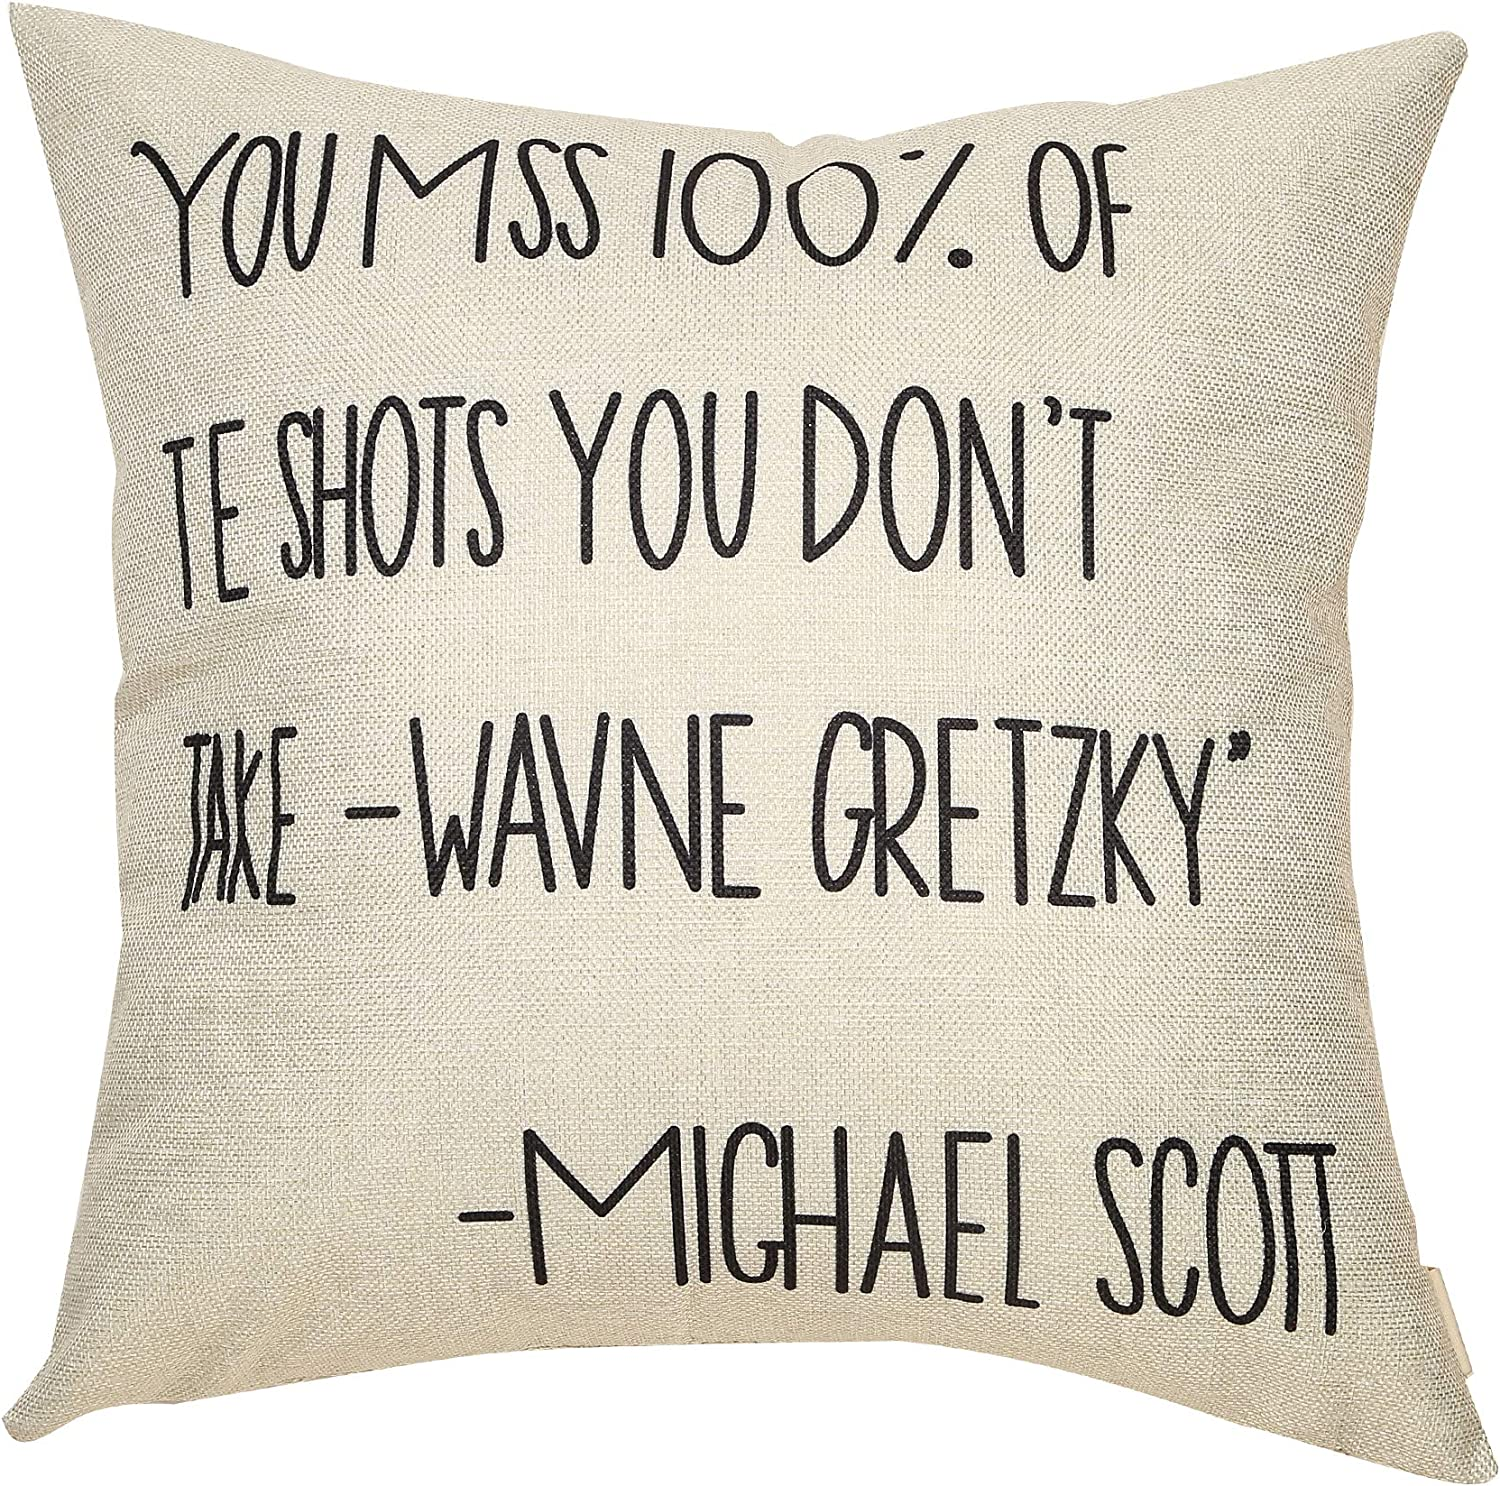 Fbcoo The Office TV Show Decorative Throw Pillow Case Bears Beets Battlestar Galactica Cushion Cover Home Decor 18 x 18 Inch Cotton Linen for Sofa Couch